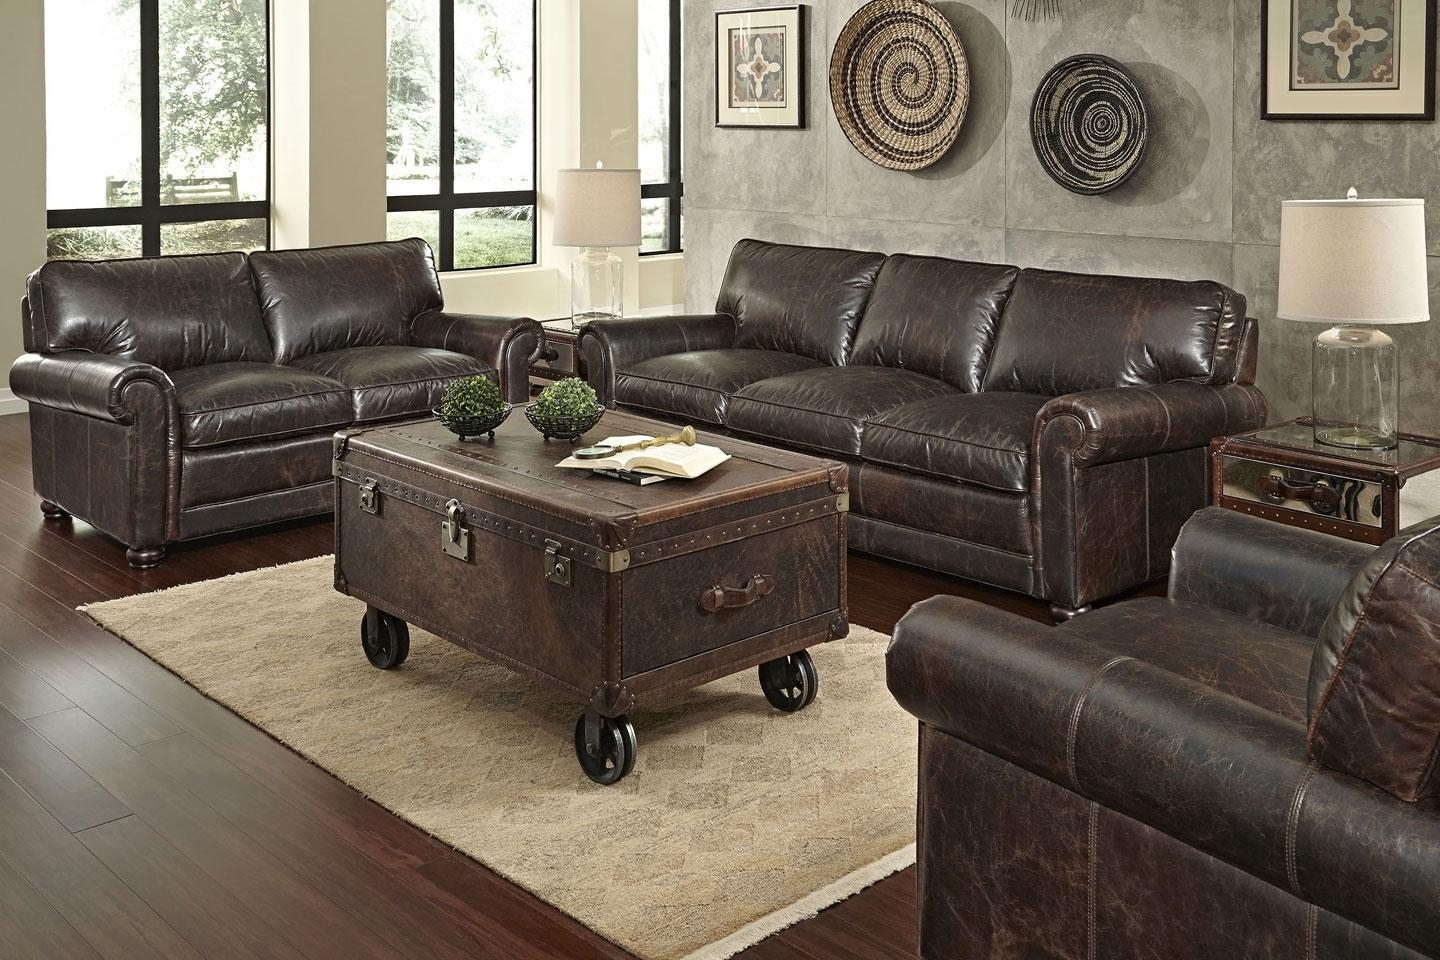 Leather Sofa And Loveseat Set Pertaining To Black Leather Sofas And Loveseat Sets (Image 18 of 20)